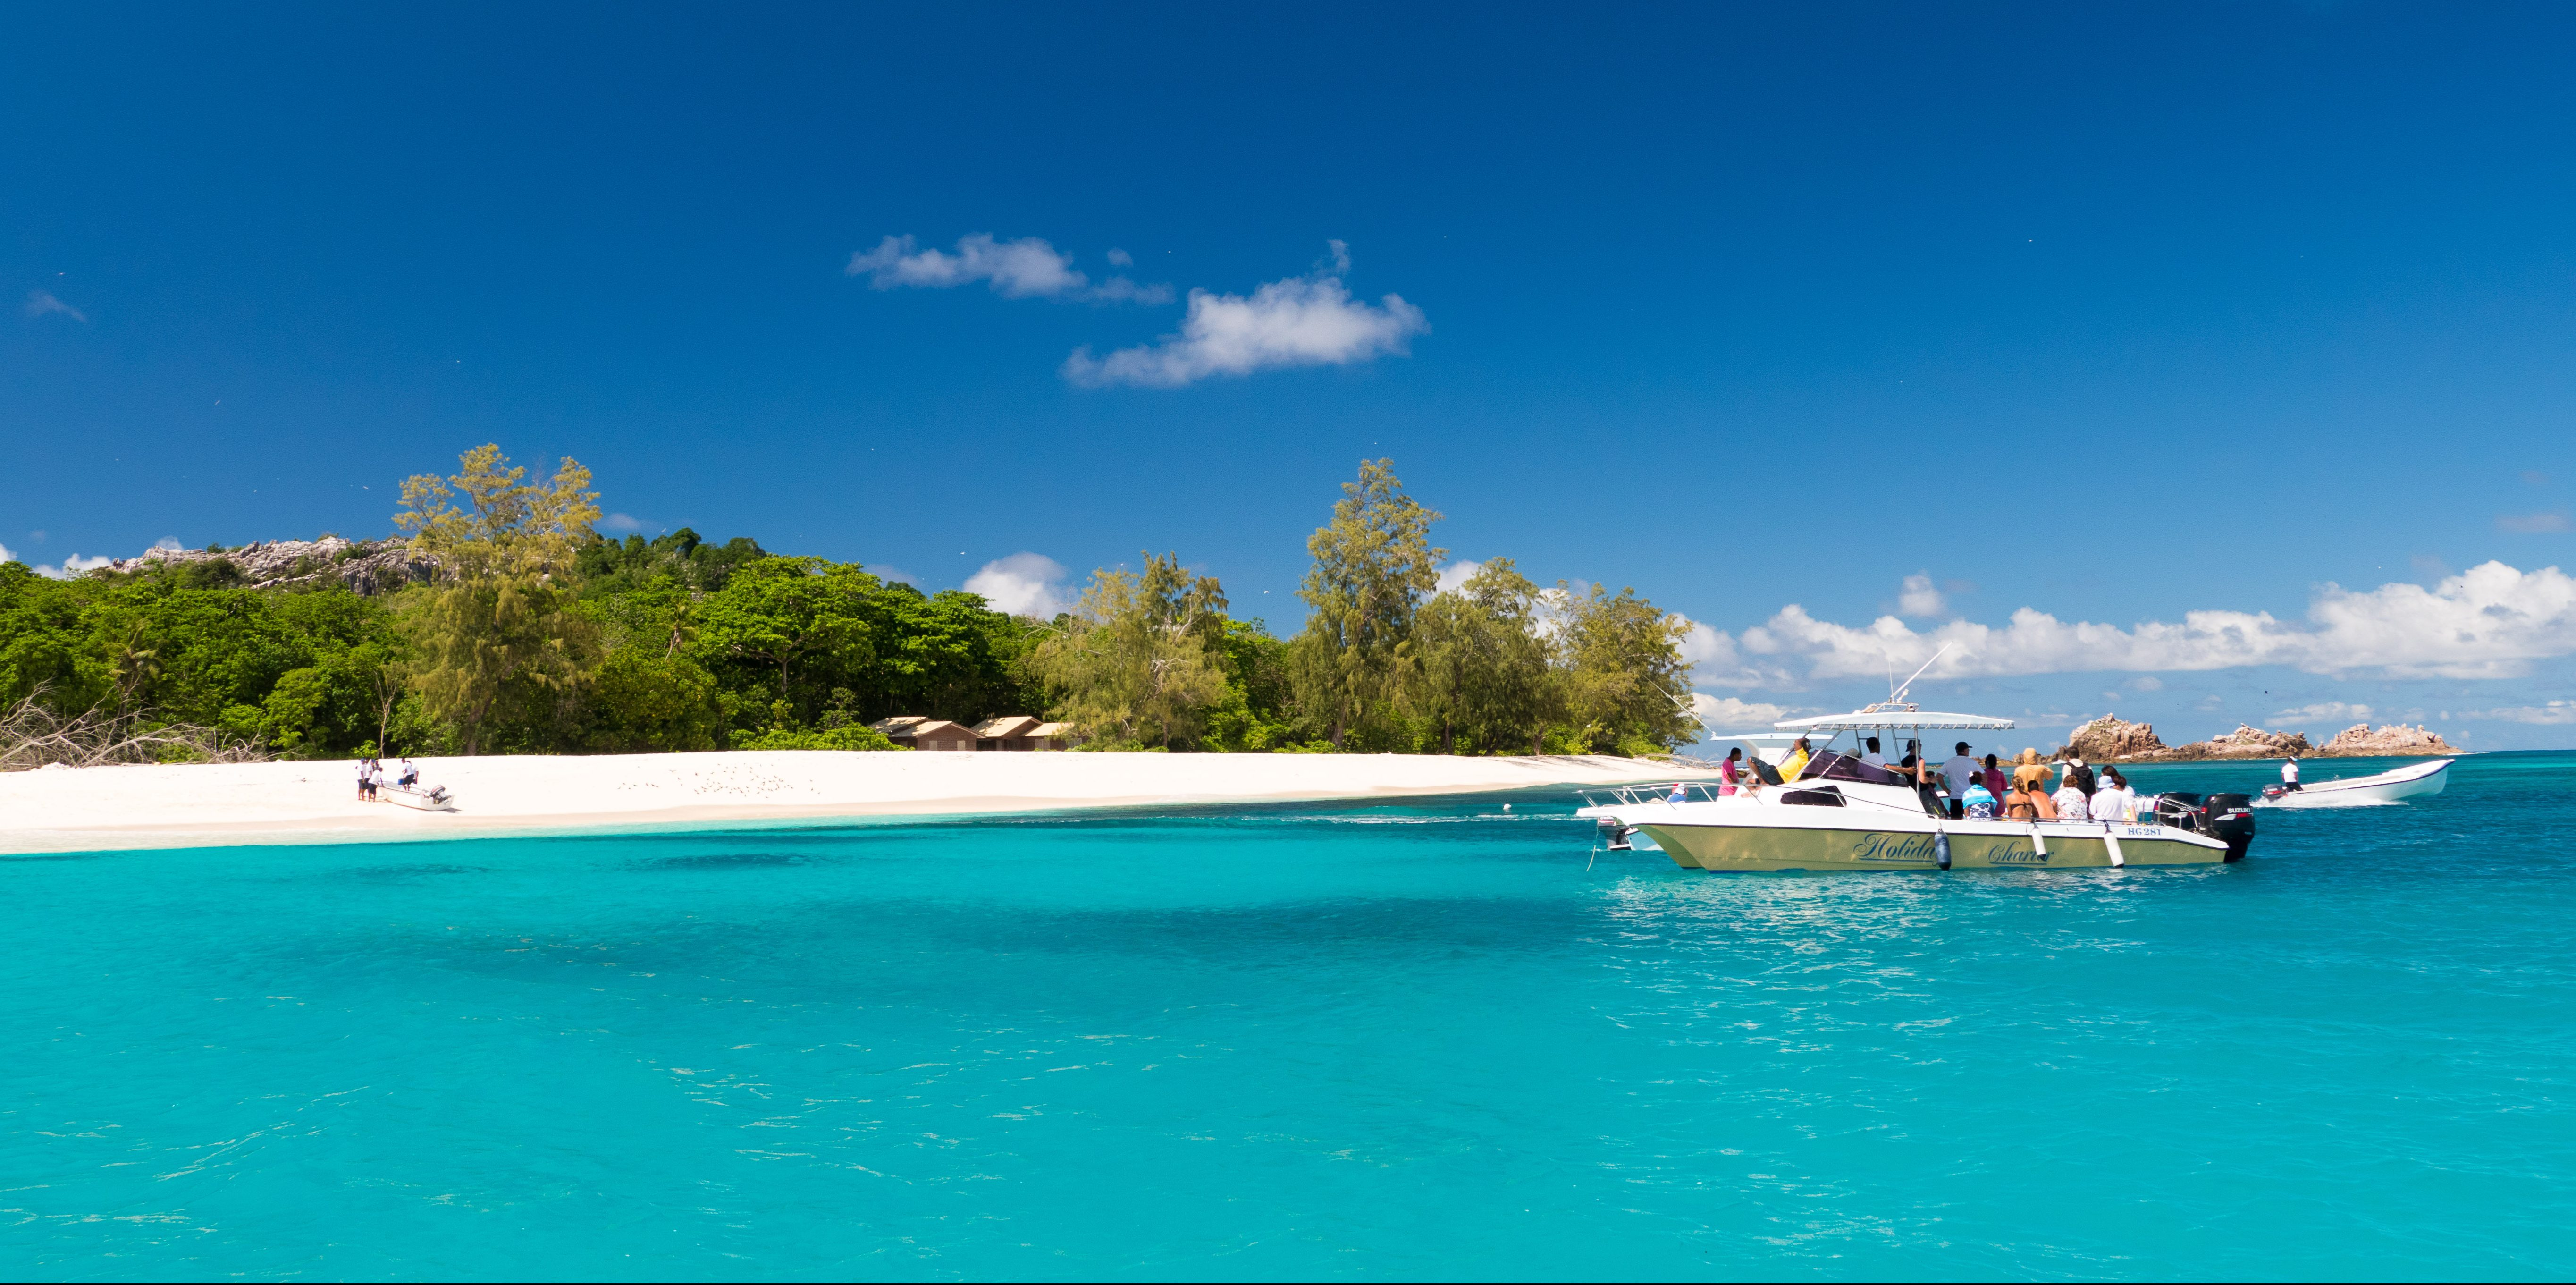 Visitors to Bird Island, in the Seychelles archipelago, are often wildlife conservation officers and conservation volunteers.